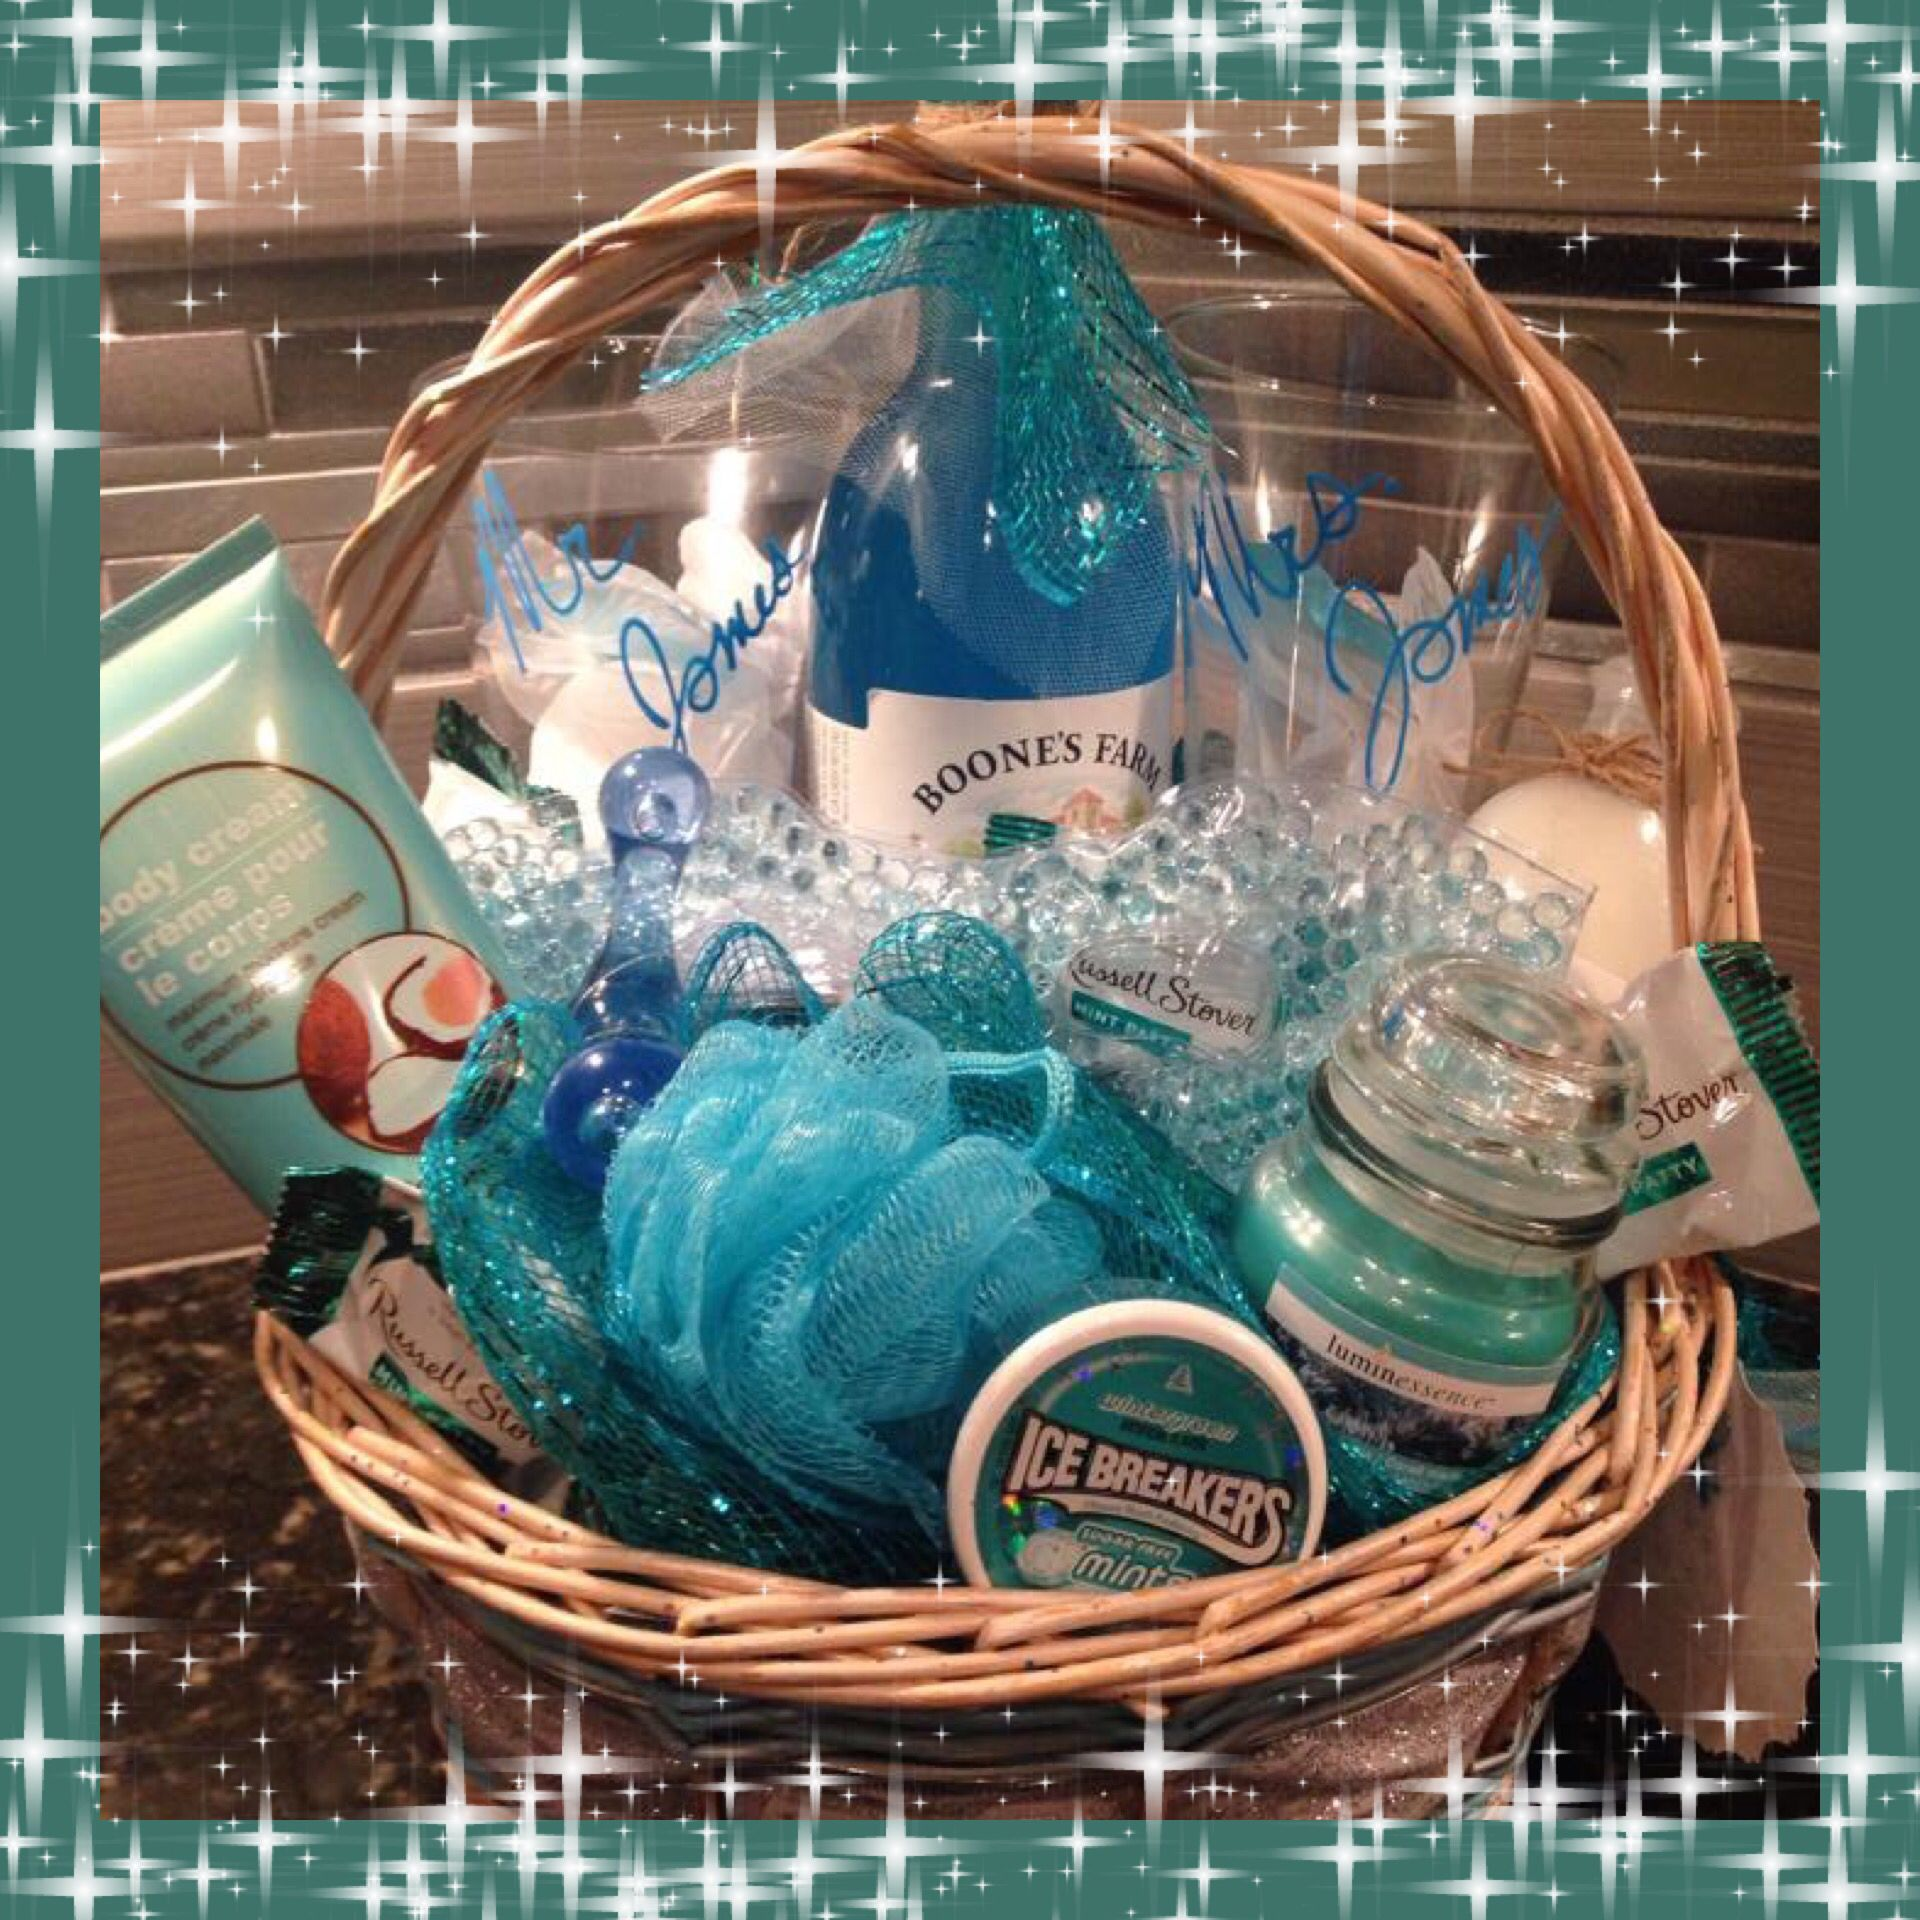 Gifts For Newly Wed Couple: Wedding Or Honeymoon Gift Basket For Him And Her , Couples